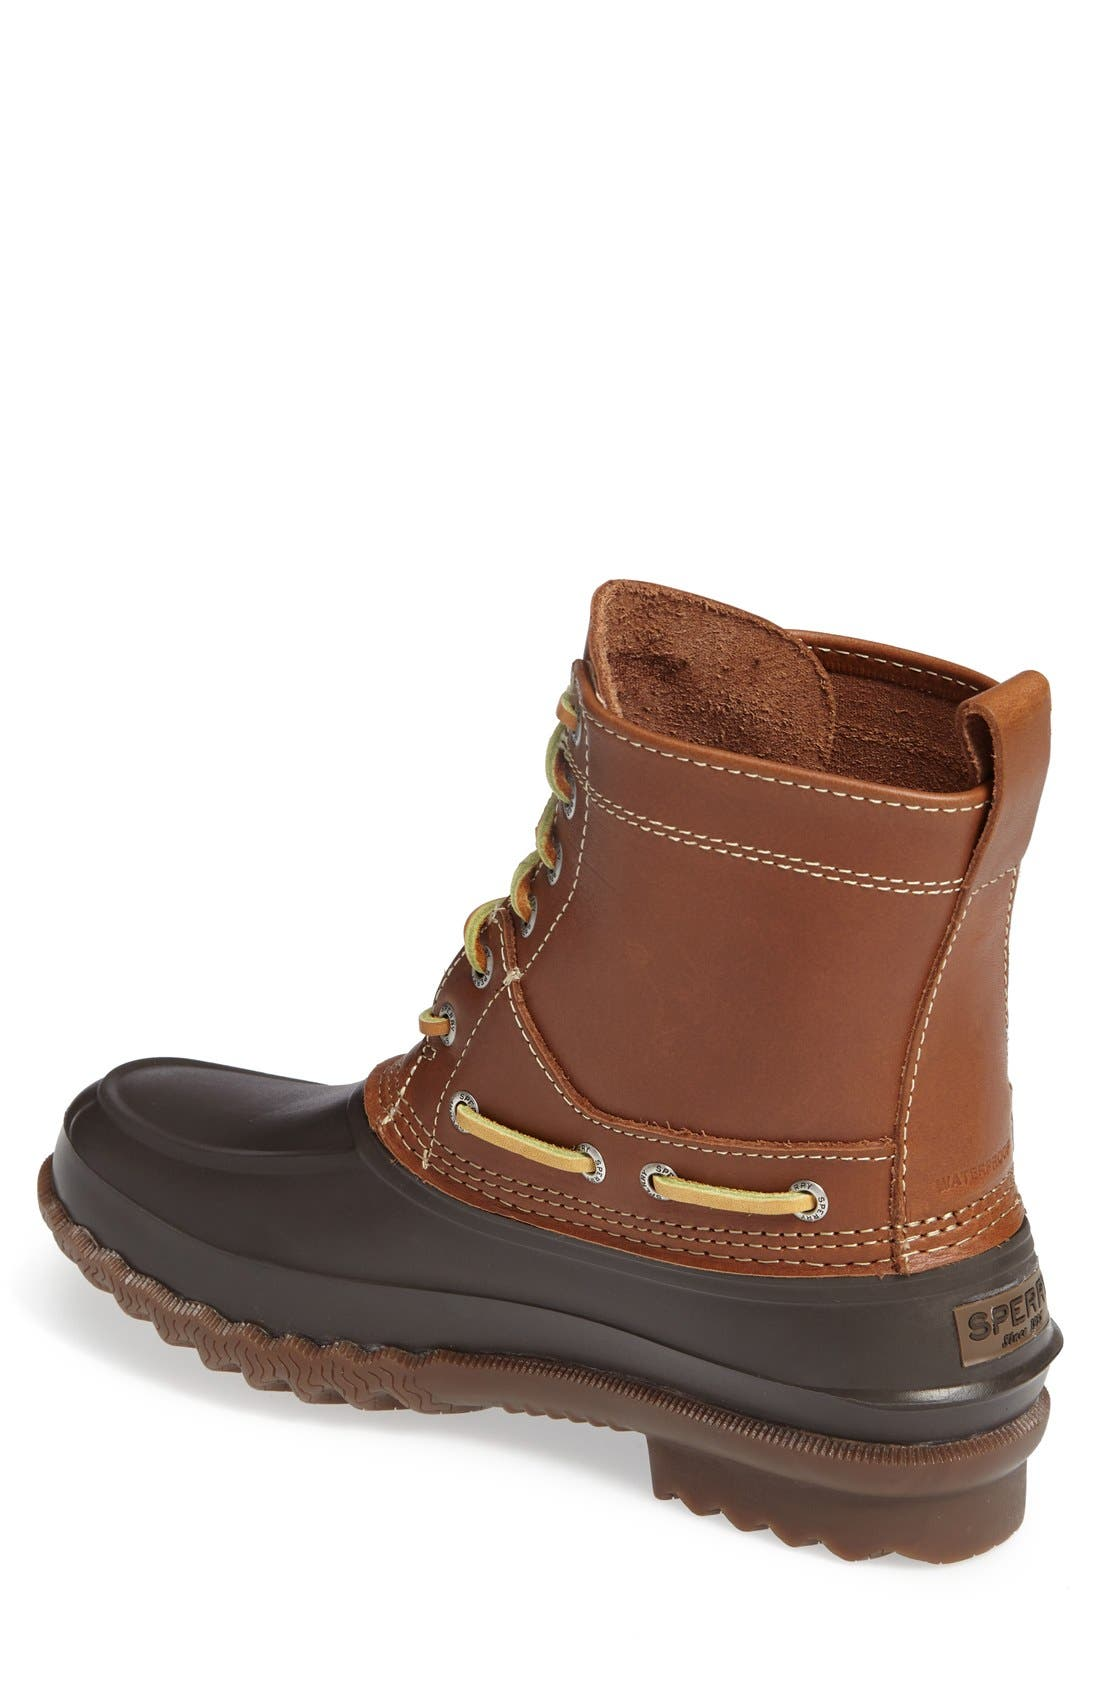 Alternate Image 2  - Sperry 'Decoy' Waterproof Boot (Men)